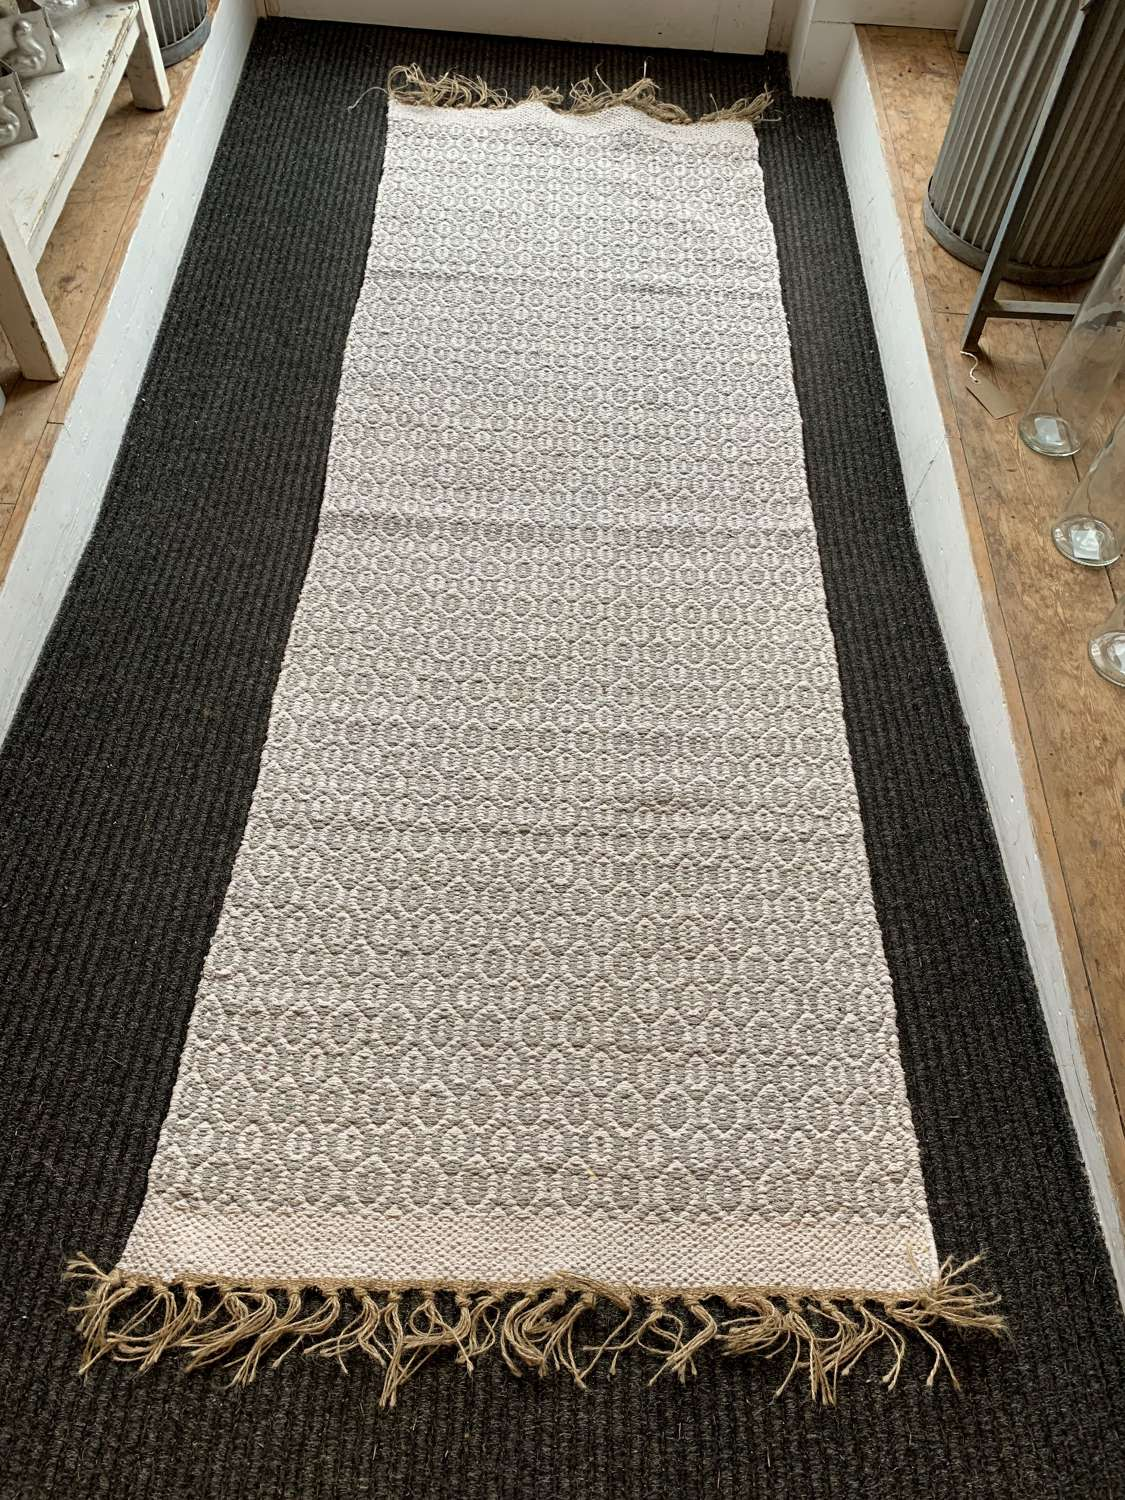 Recycled cotton and jute runner